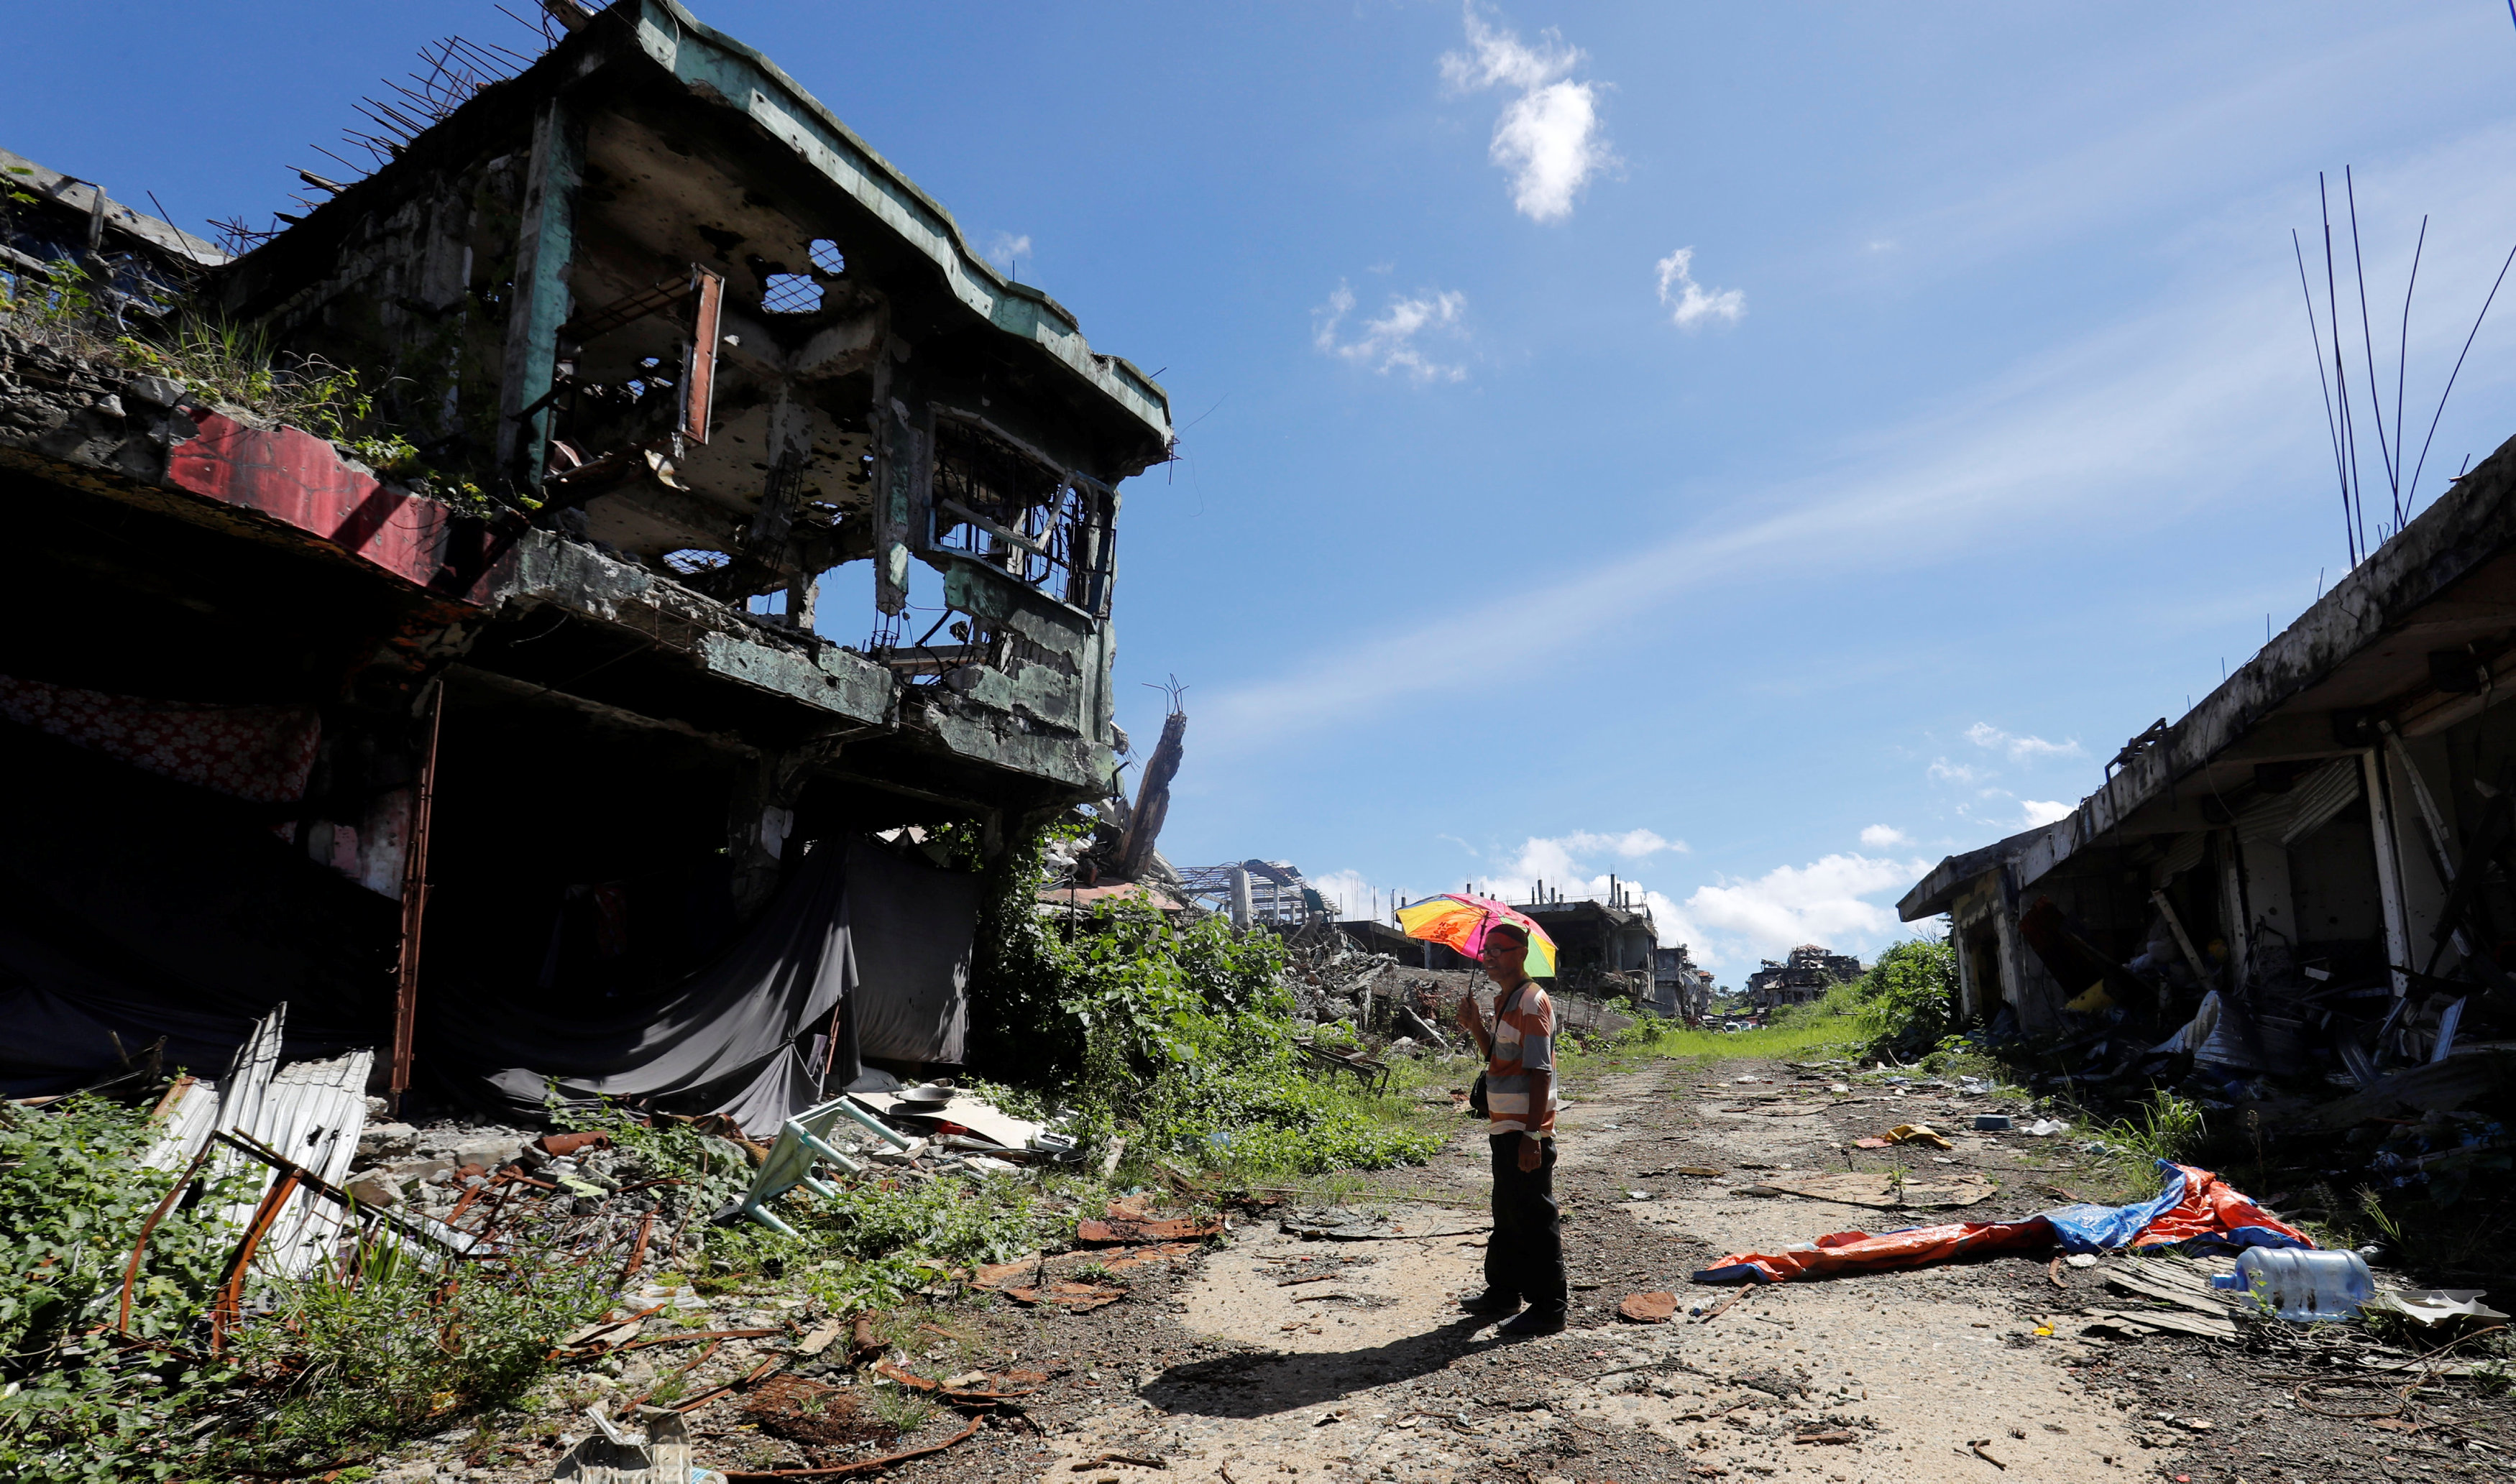 A man stands in front of his ruined house after residents were allowed to return to their homes for the first time since the battle between government troops and Islamic State militants began in May last year, in the Islamic city of Marawi, southern Philippines April 19, 2018. REUTERS/Erik De Castro